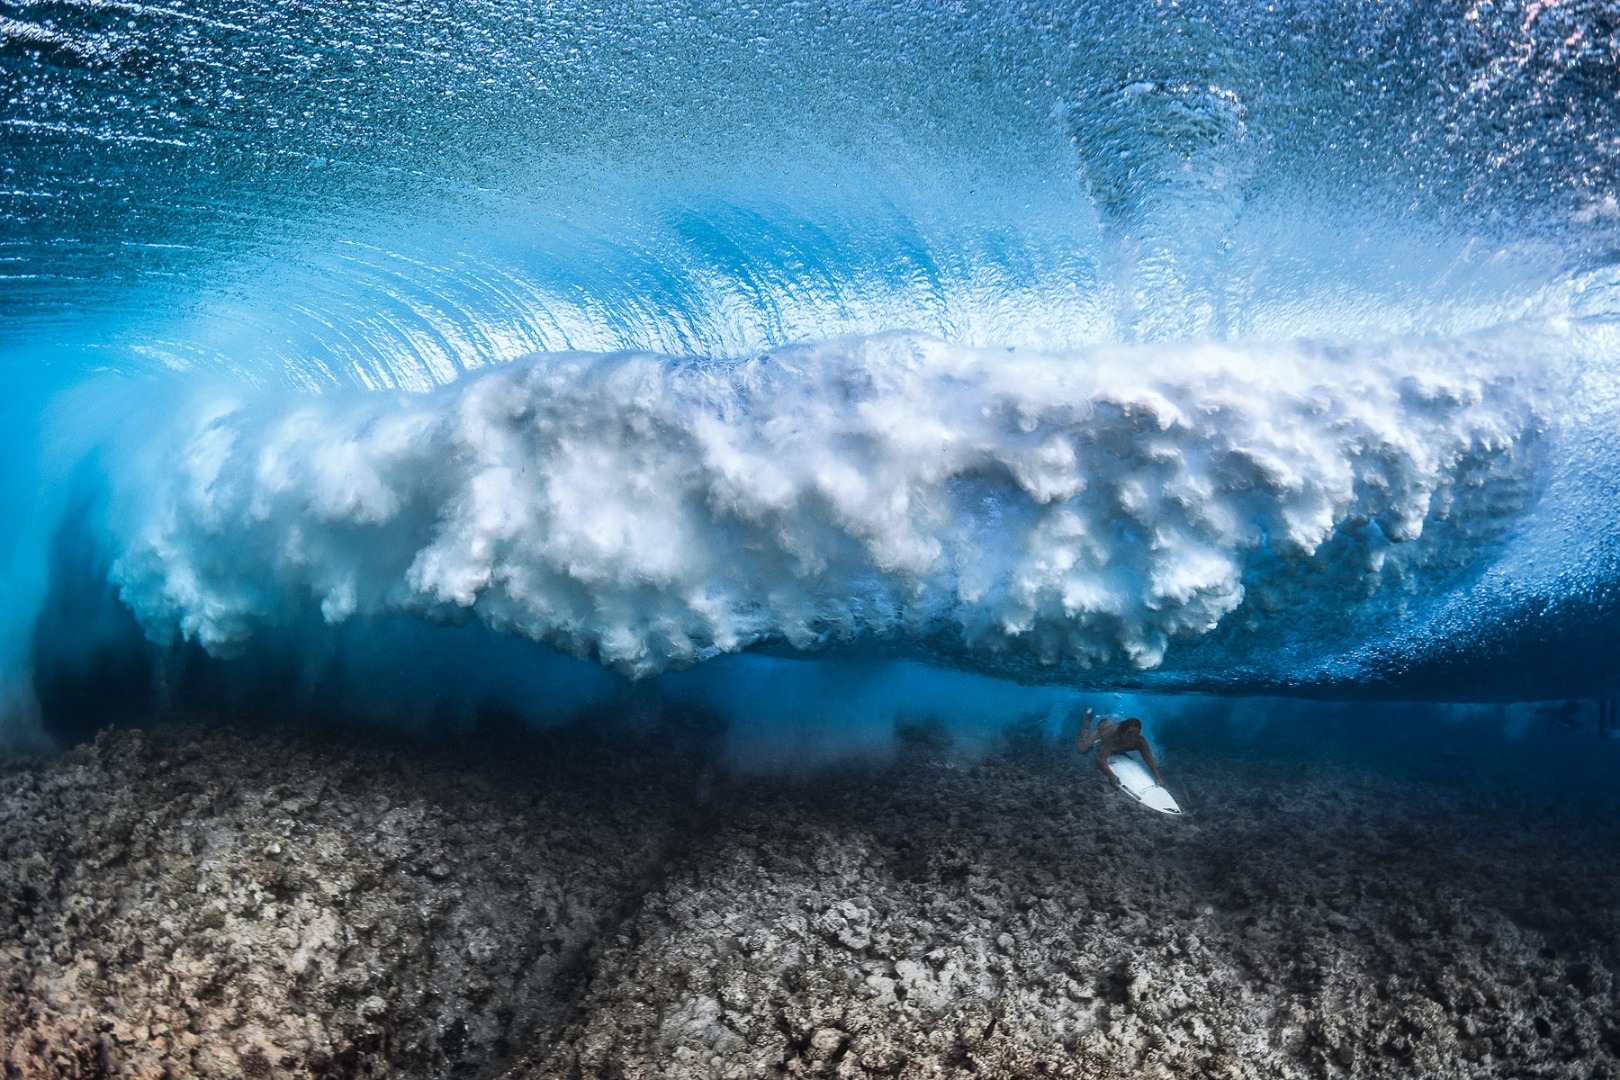 Brave the elements with the incredible Outdoor Photographer of the Year winners